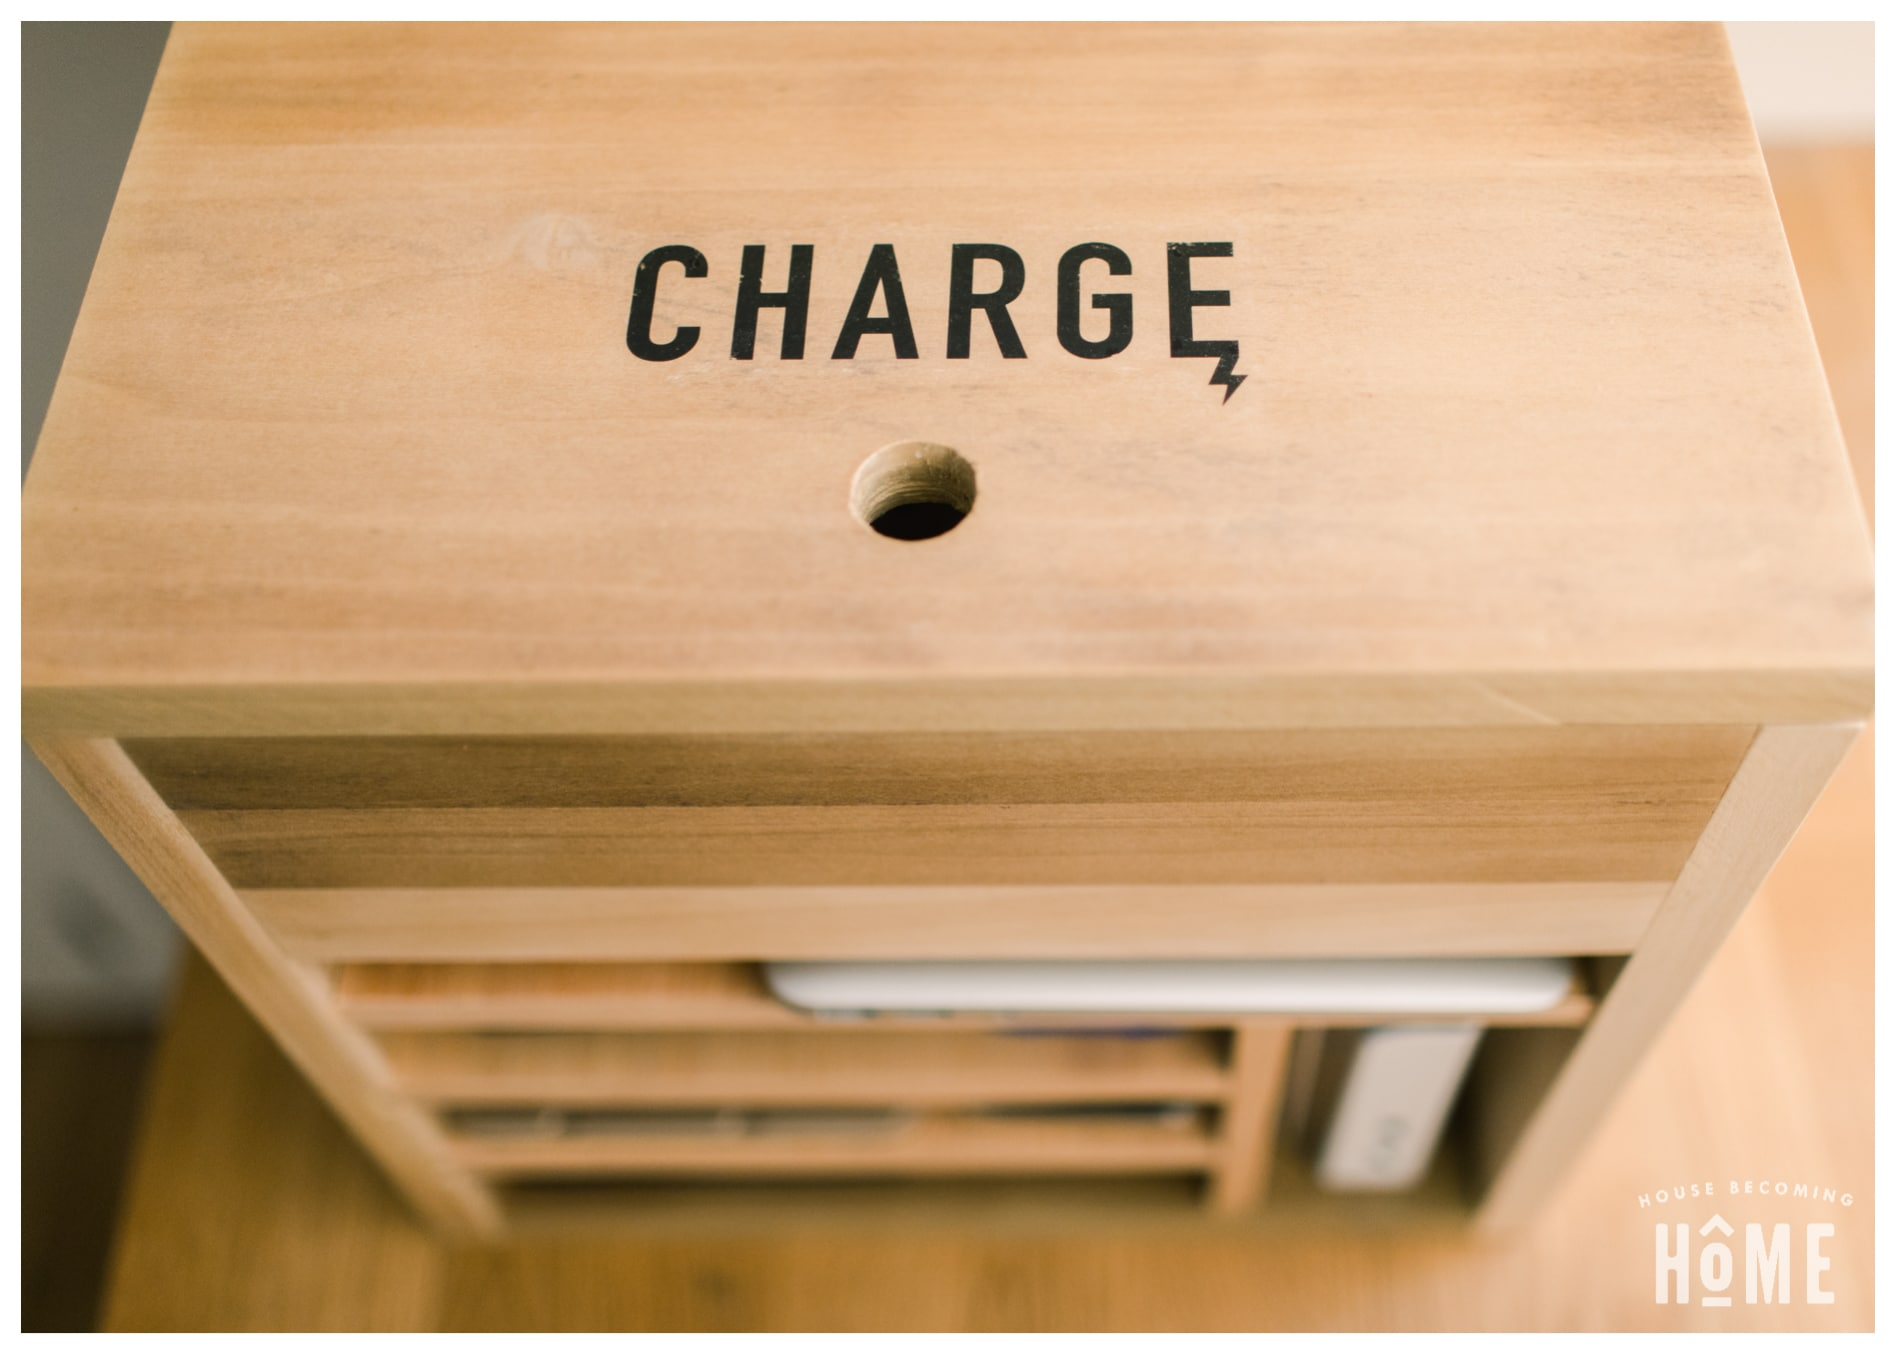 DIY Charging Station with Charge Icon Printed on Wood